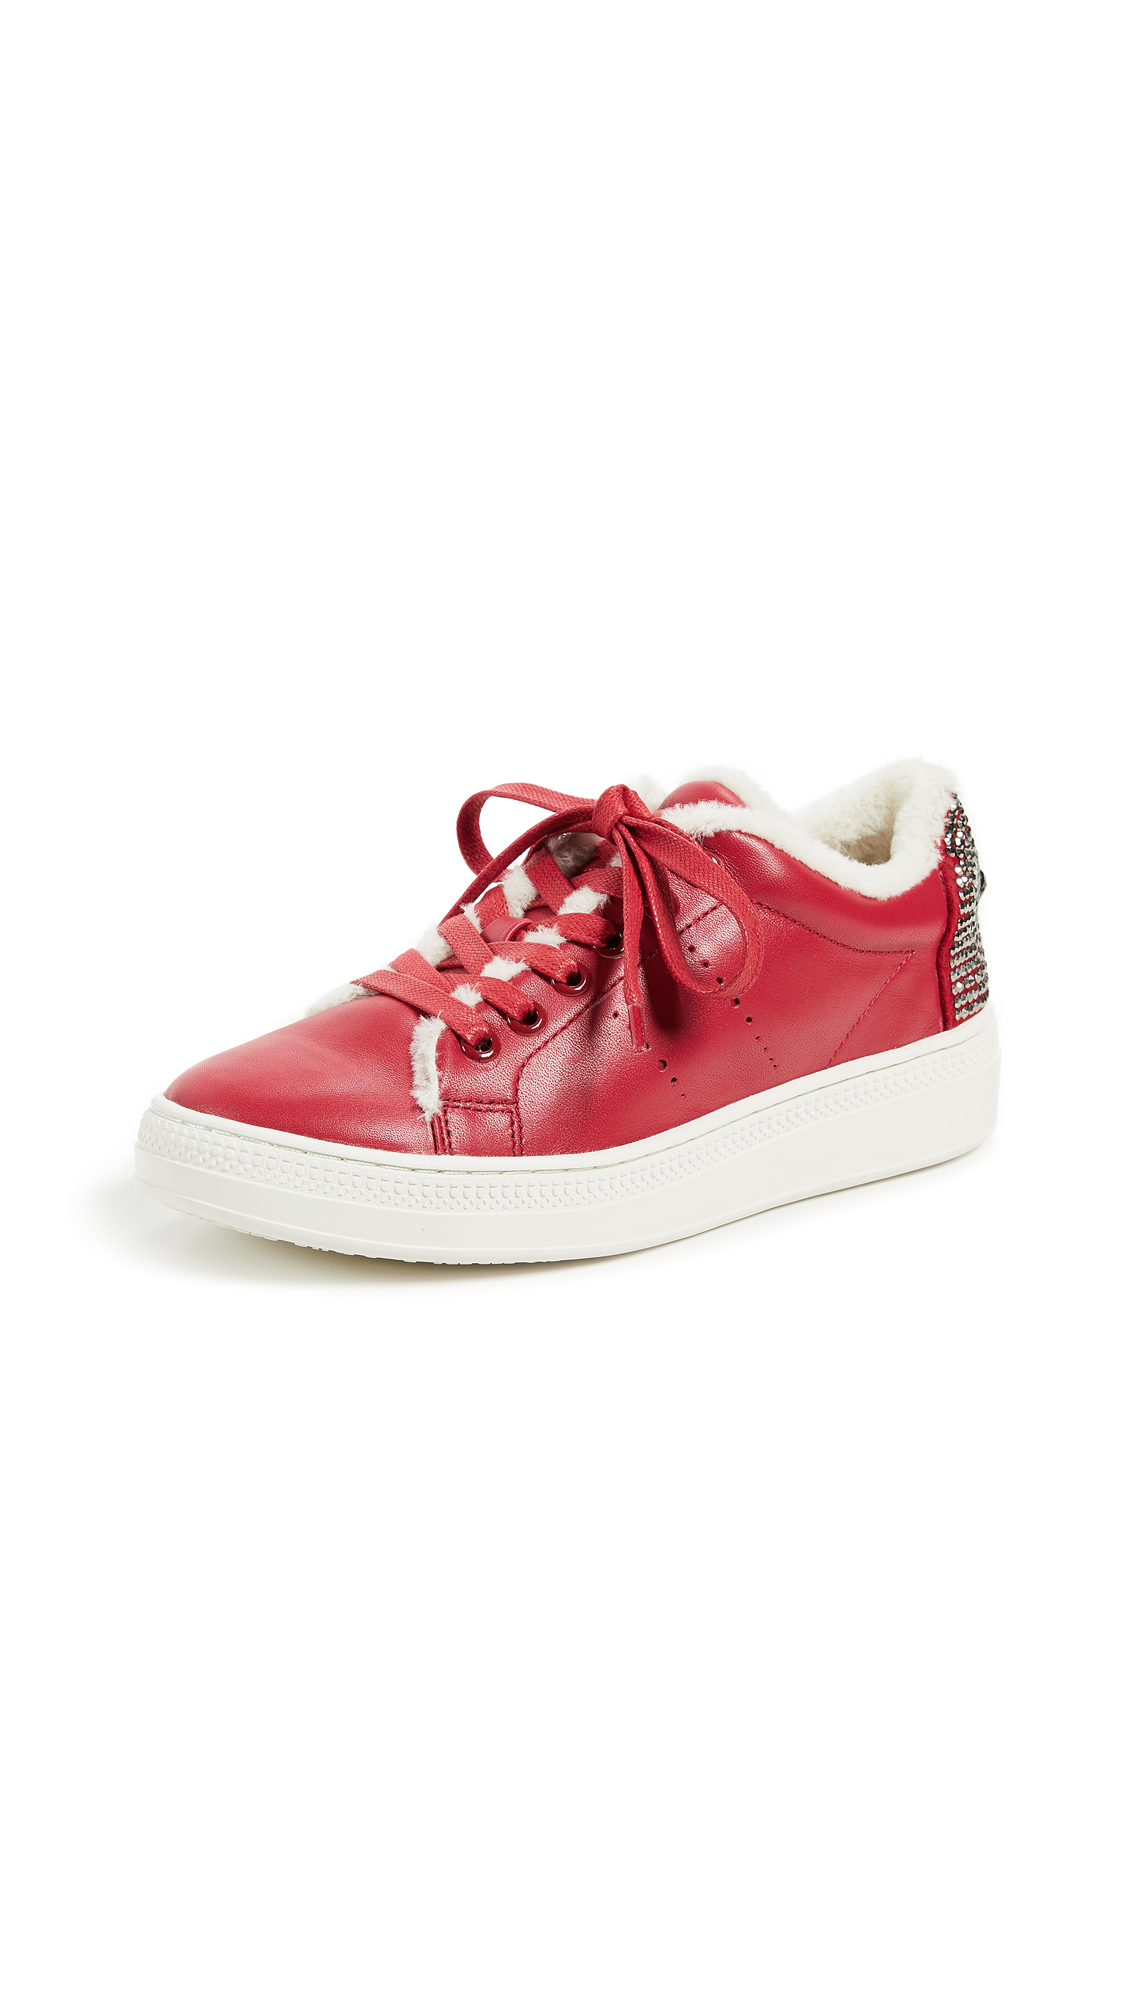 ONE by Lace Up Eye Sneakers - Red